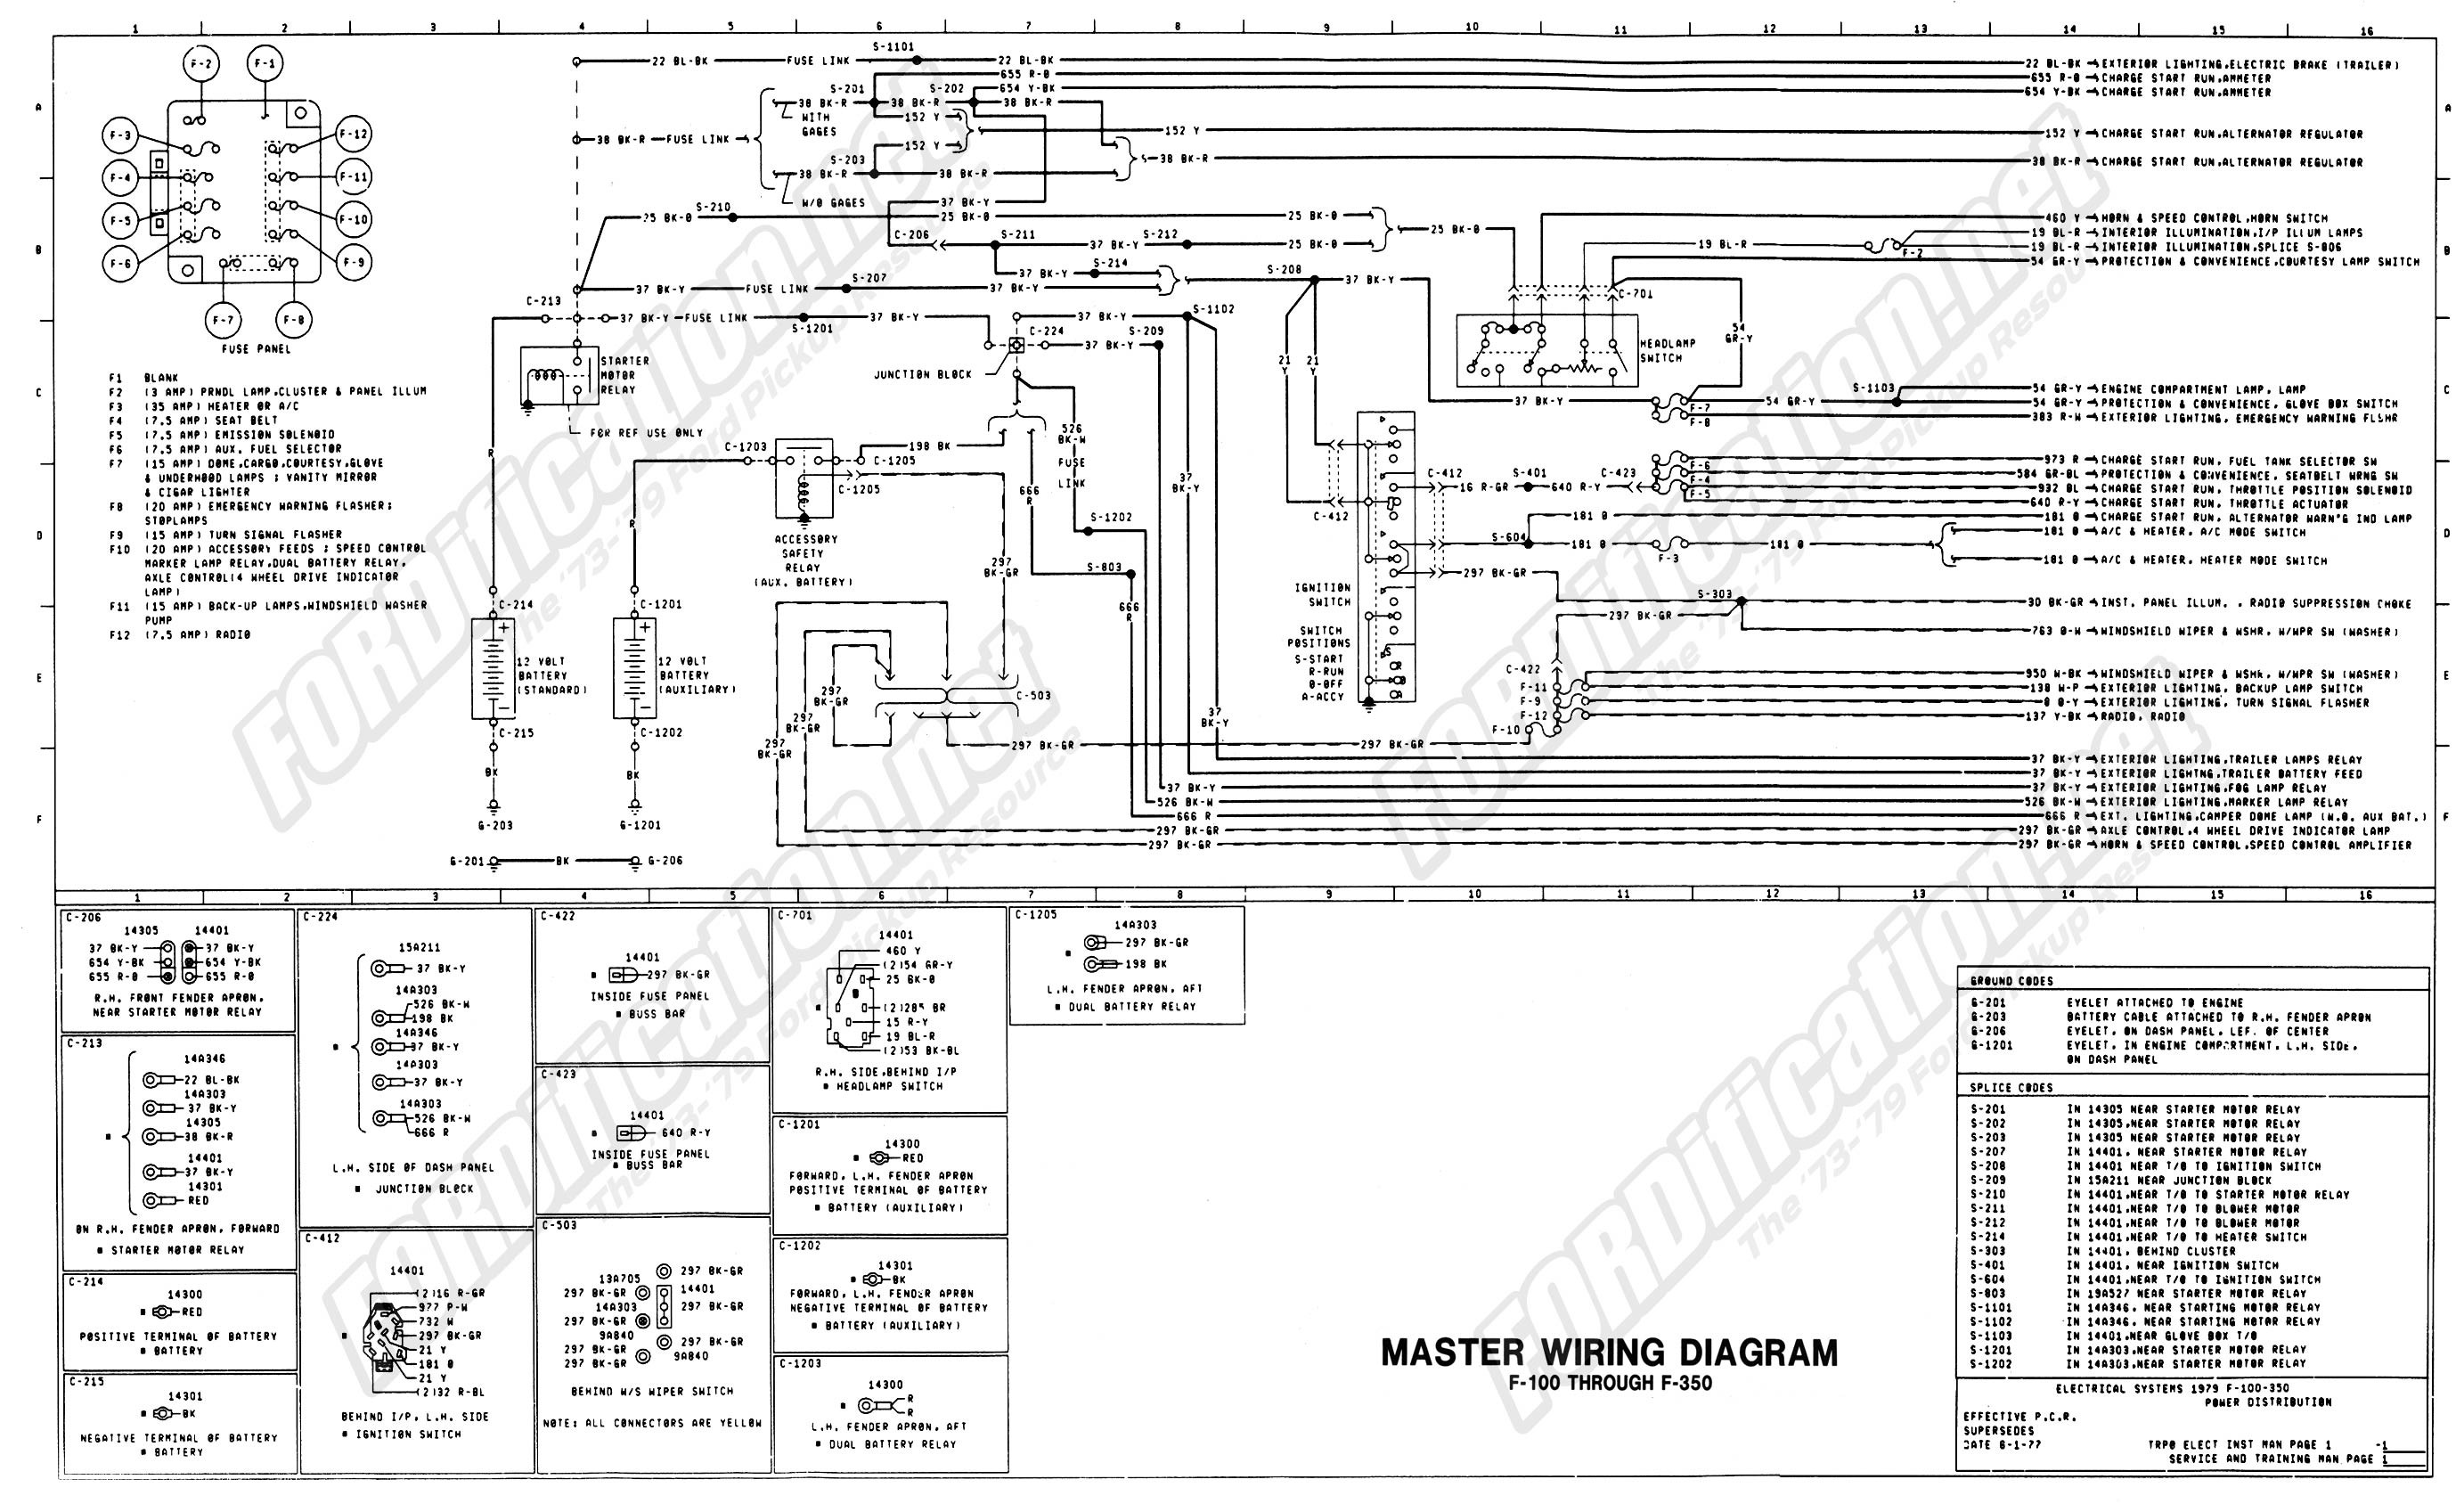 2004 ford F150 Engine Diagram 79 F150 solenoid Wiring Diagram ford Truck Enthusiasts forums Of 2004 ford F150 Engine Diagram